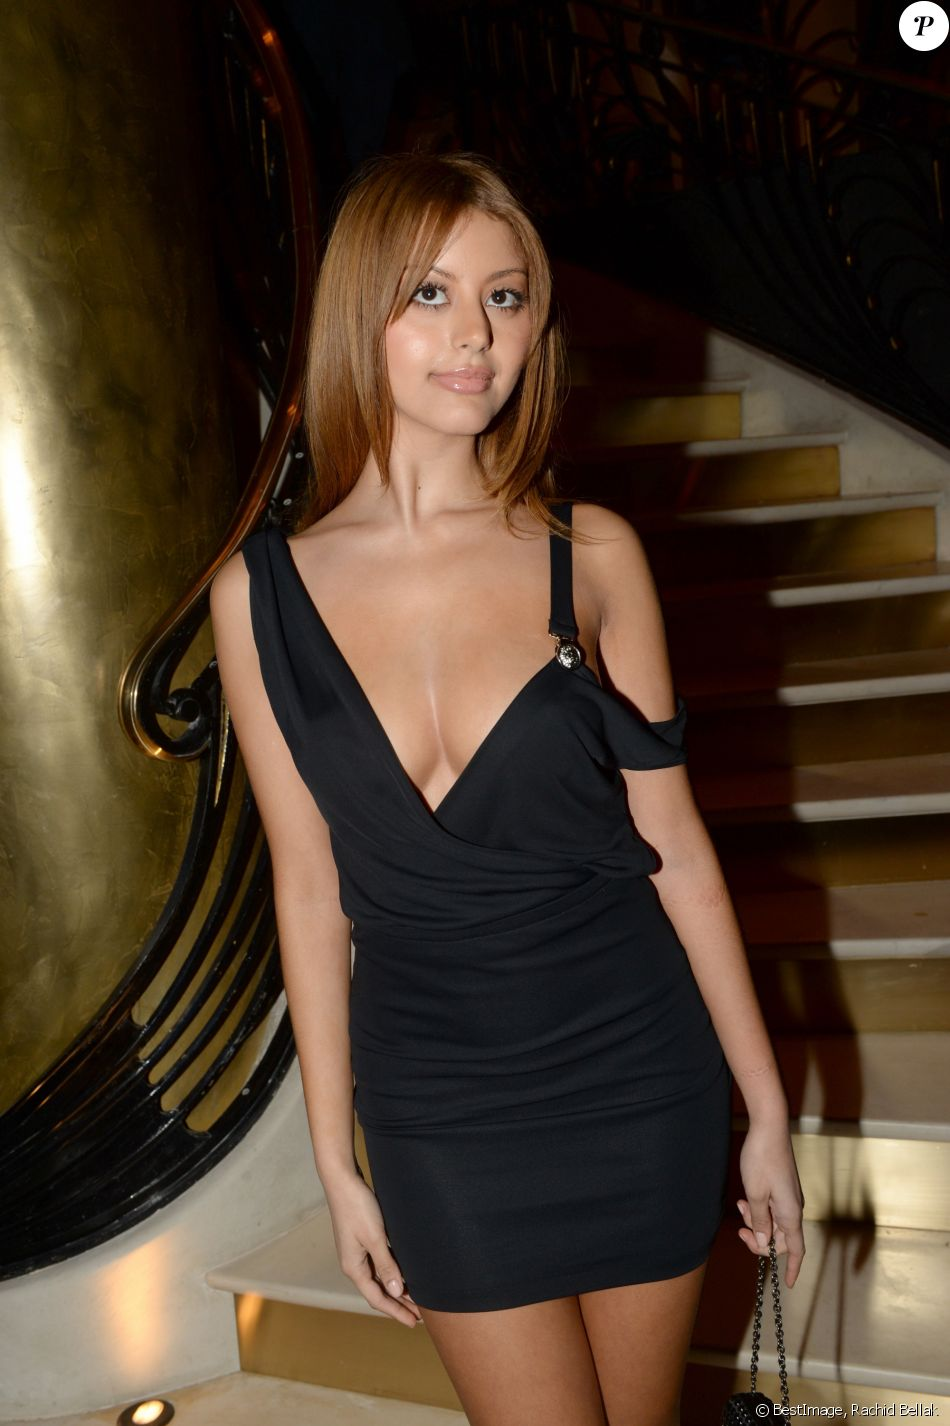 exclusif zahia dehar inauguration du restaurant. Black Bedroom Furniture Sets. Home Design Ideas